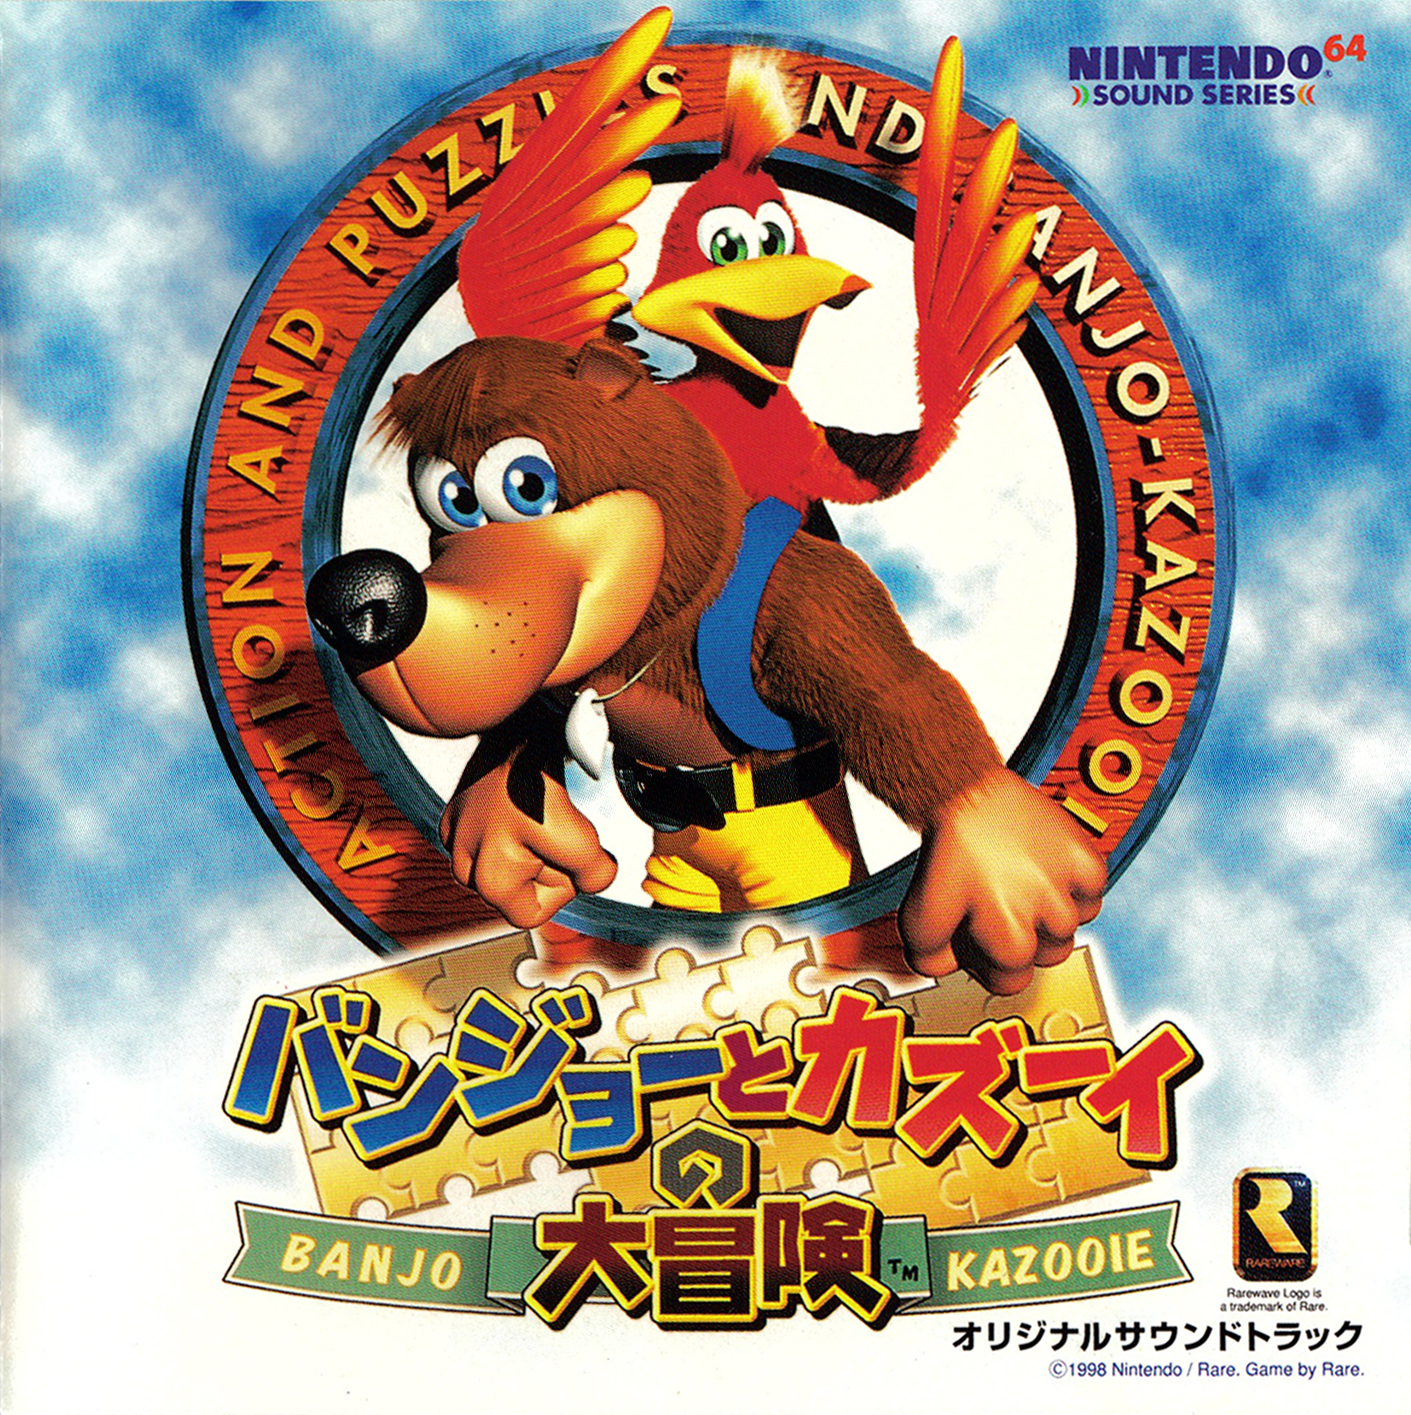 banjo_kazooie_original_soundtrack.jpg